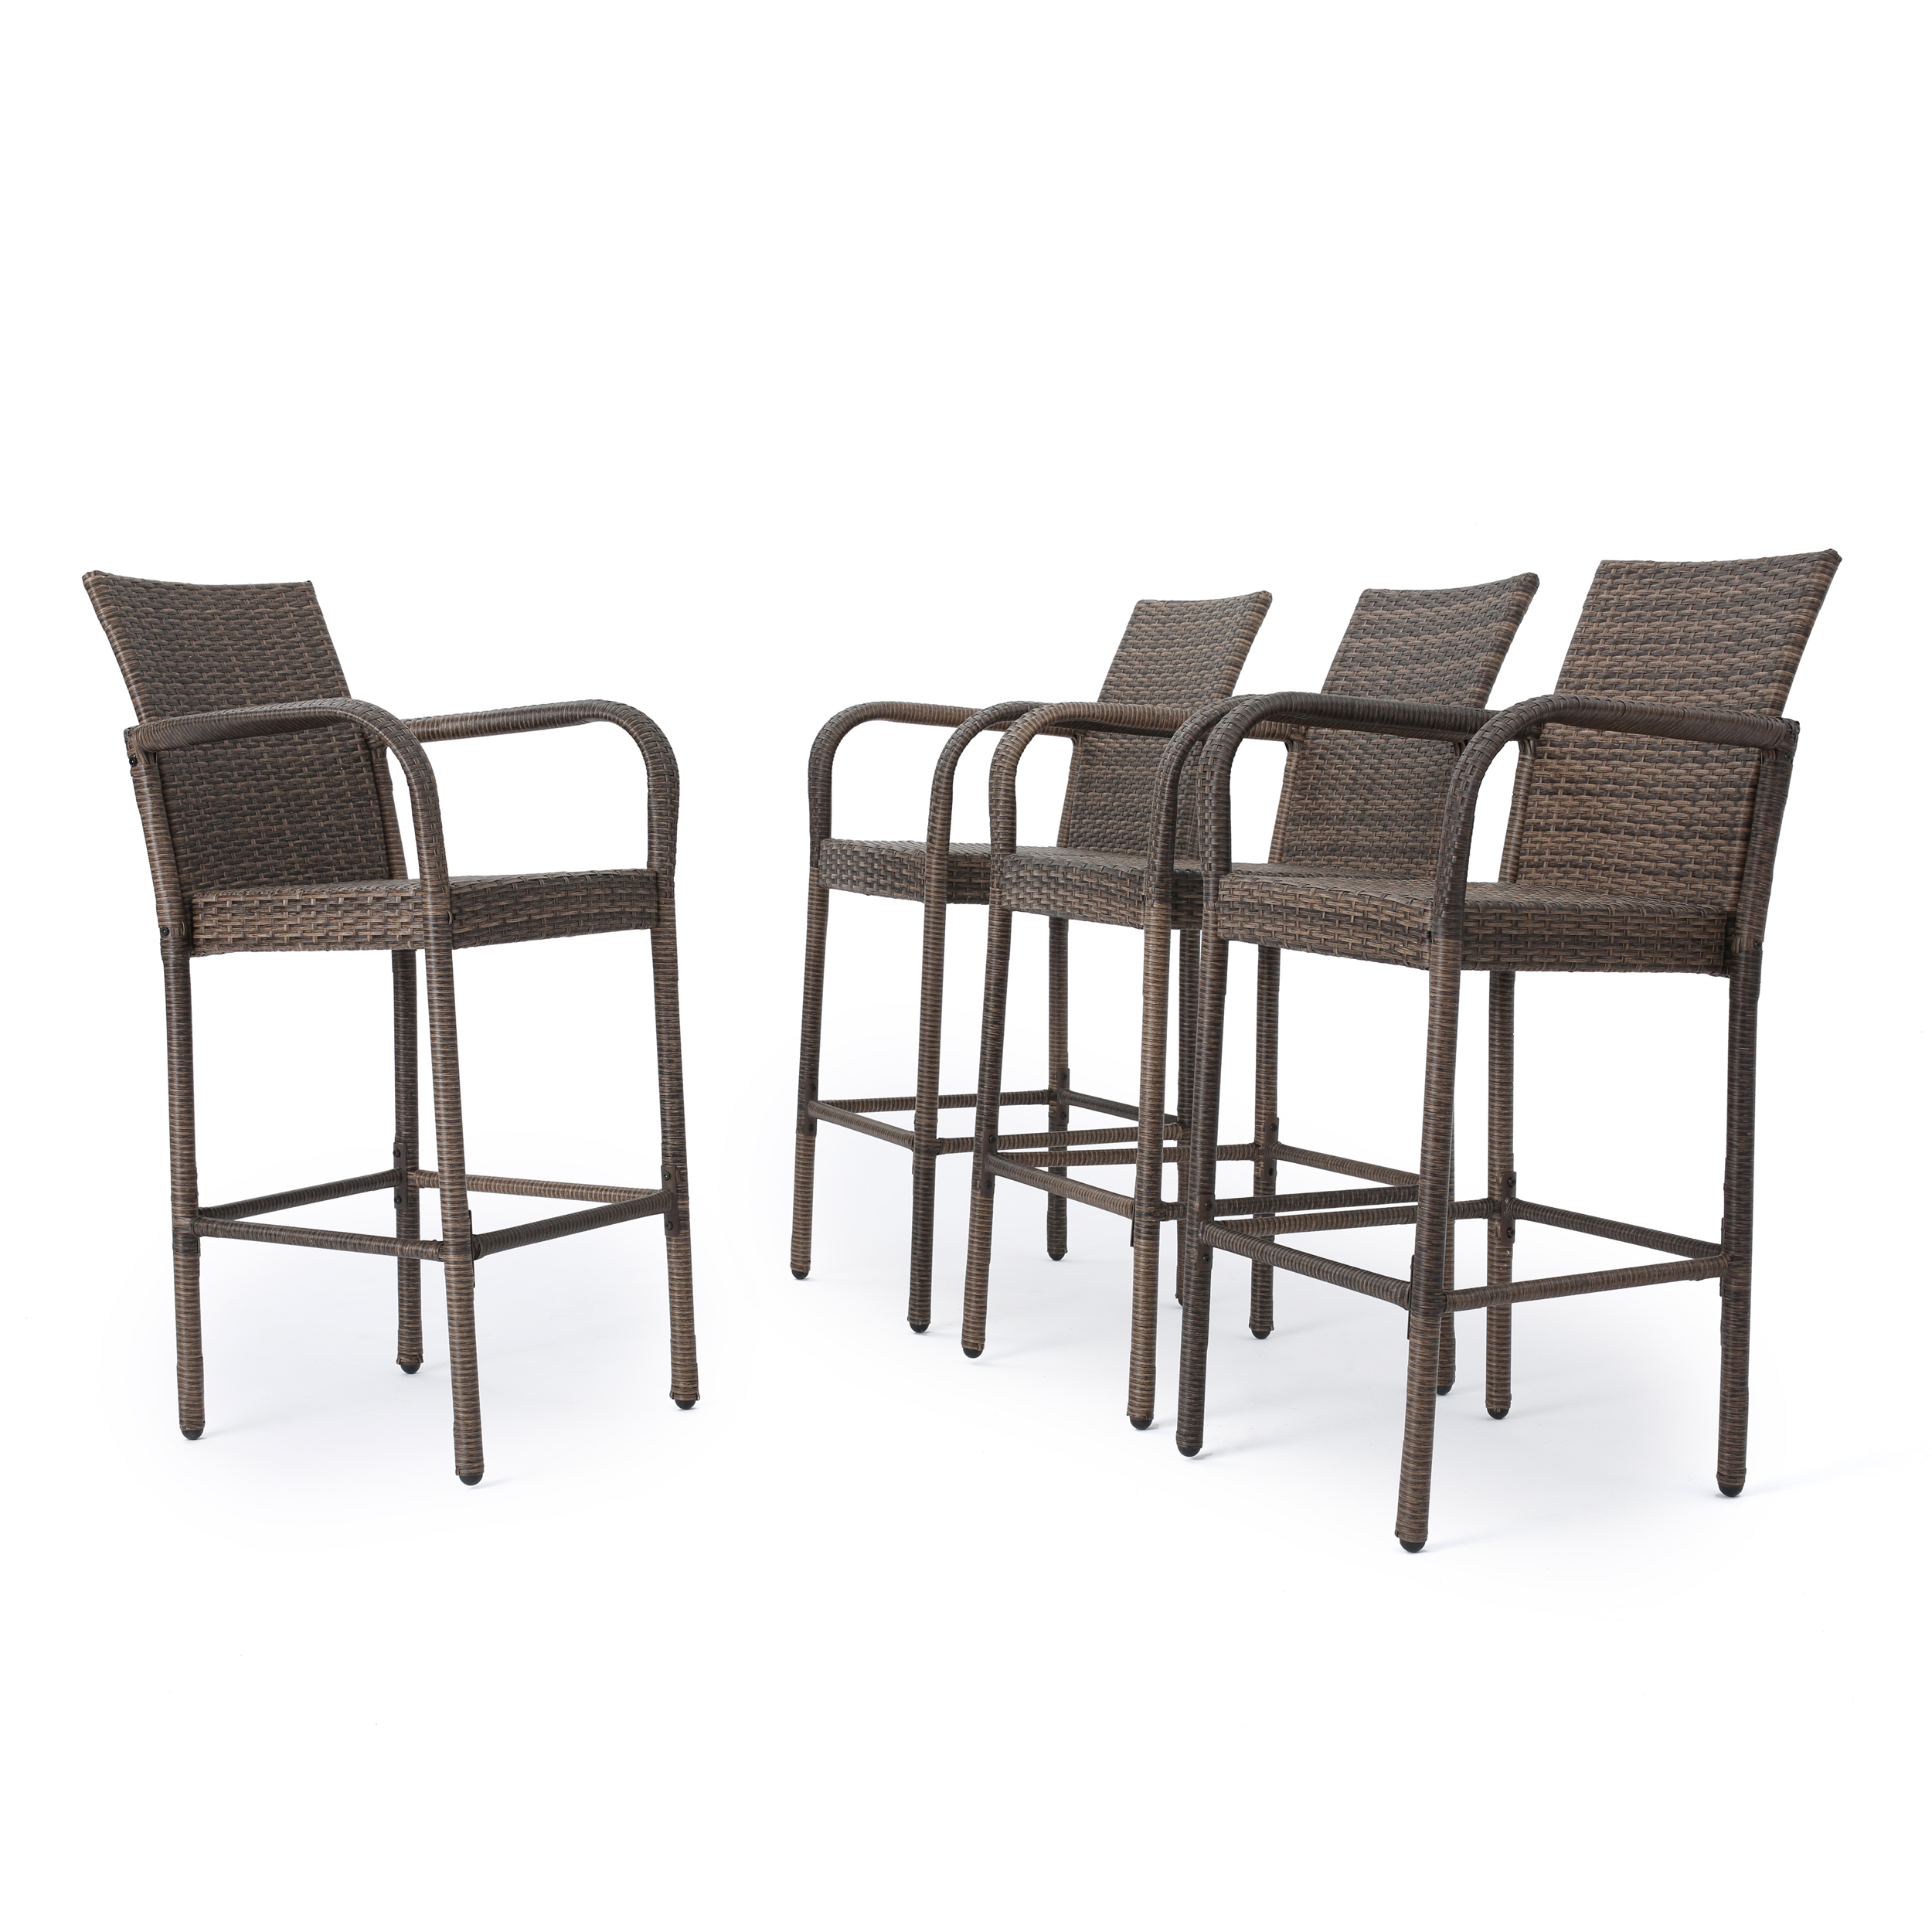 Conquista Outdoor Wicker Barstool with Iron Frame, Set of 4, Mix Mocha